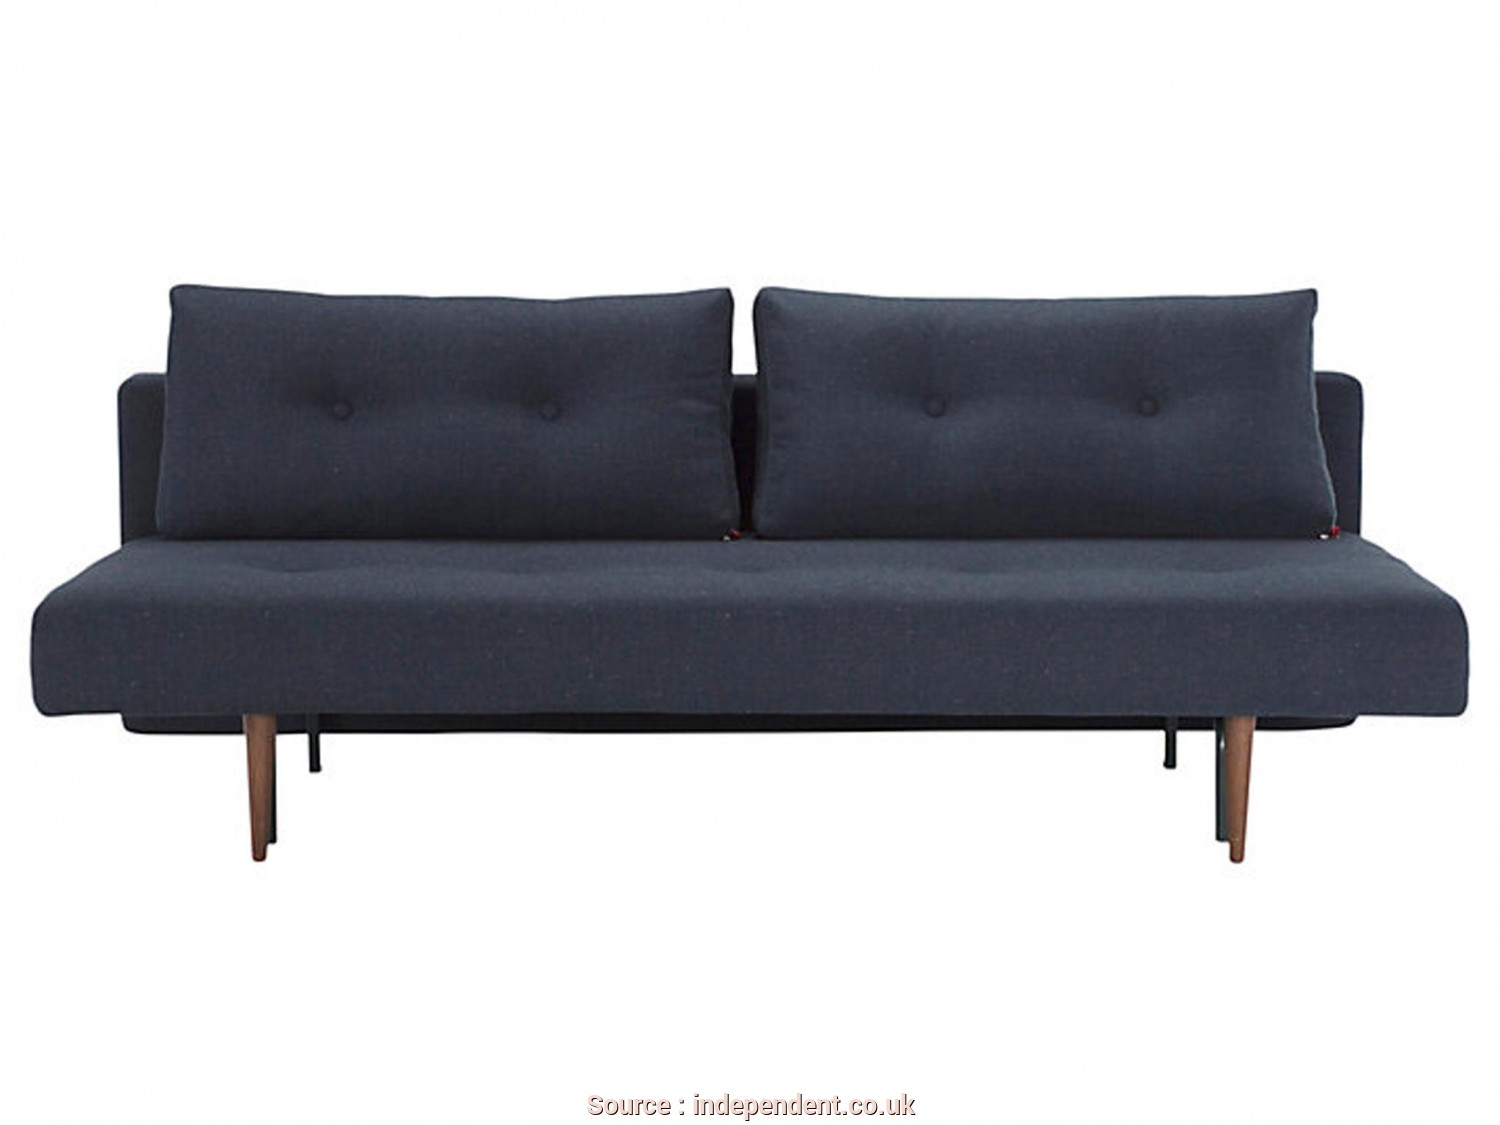 Ikea Futon Video, Classy Designed, Made In Denmark, This Stylish, Opens, By Pulling, The Base, Dropping, Back. When Flat, It Gives A Spacious Sleeping Area Of